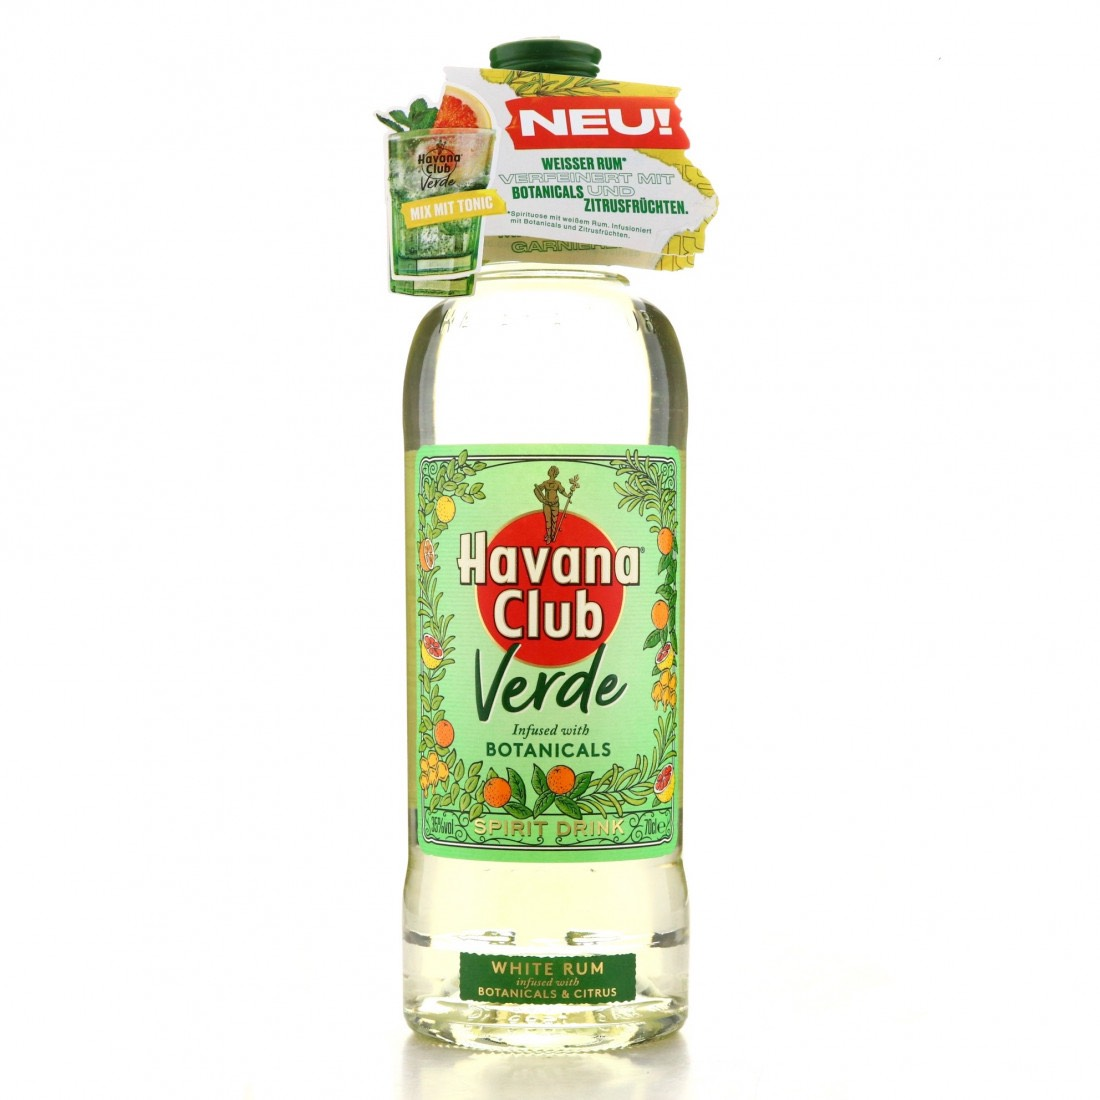 Bottle image of Verde